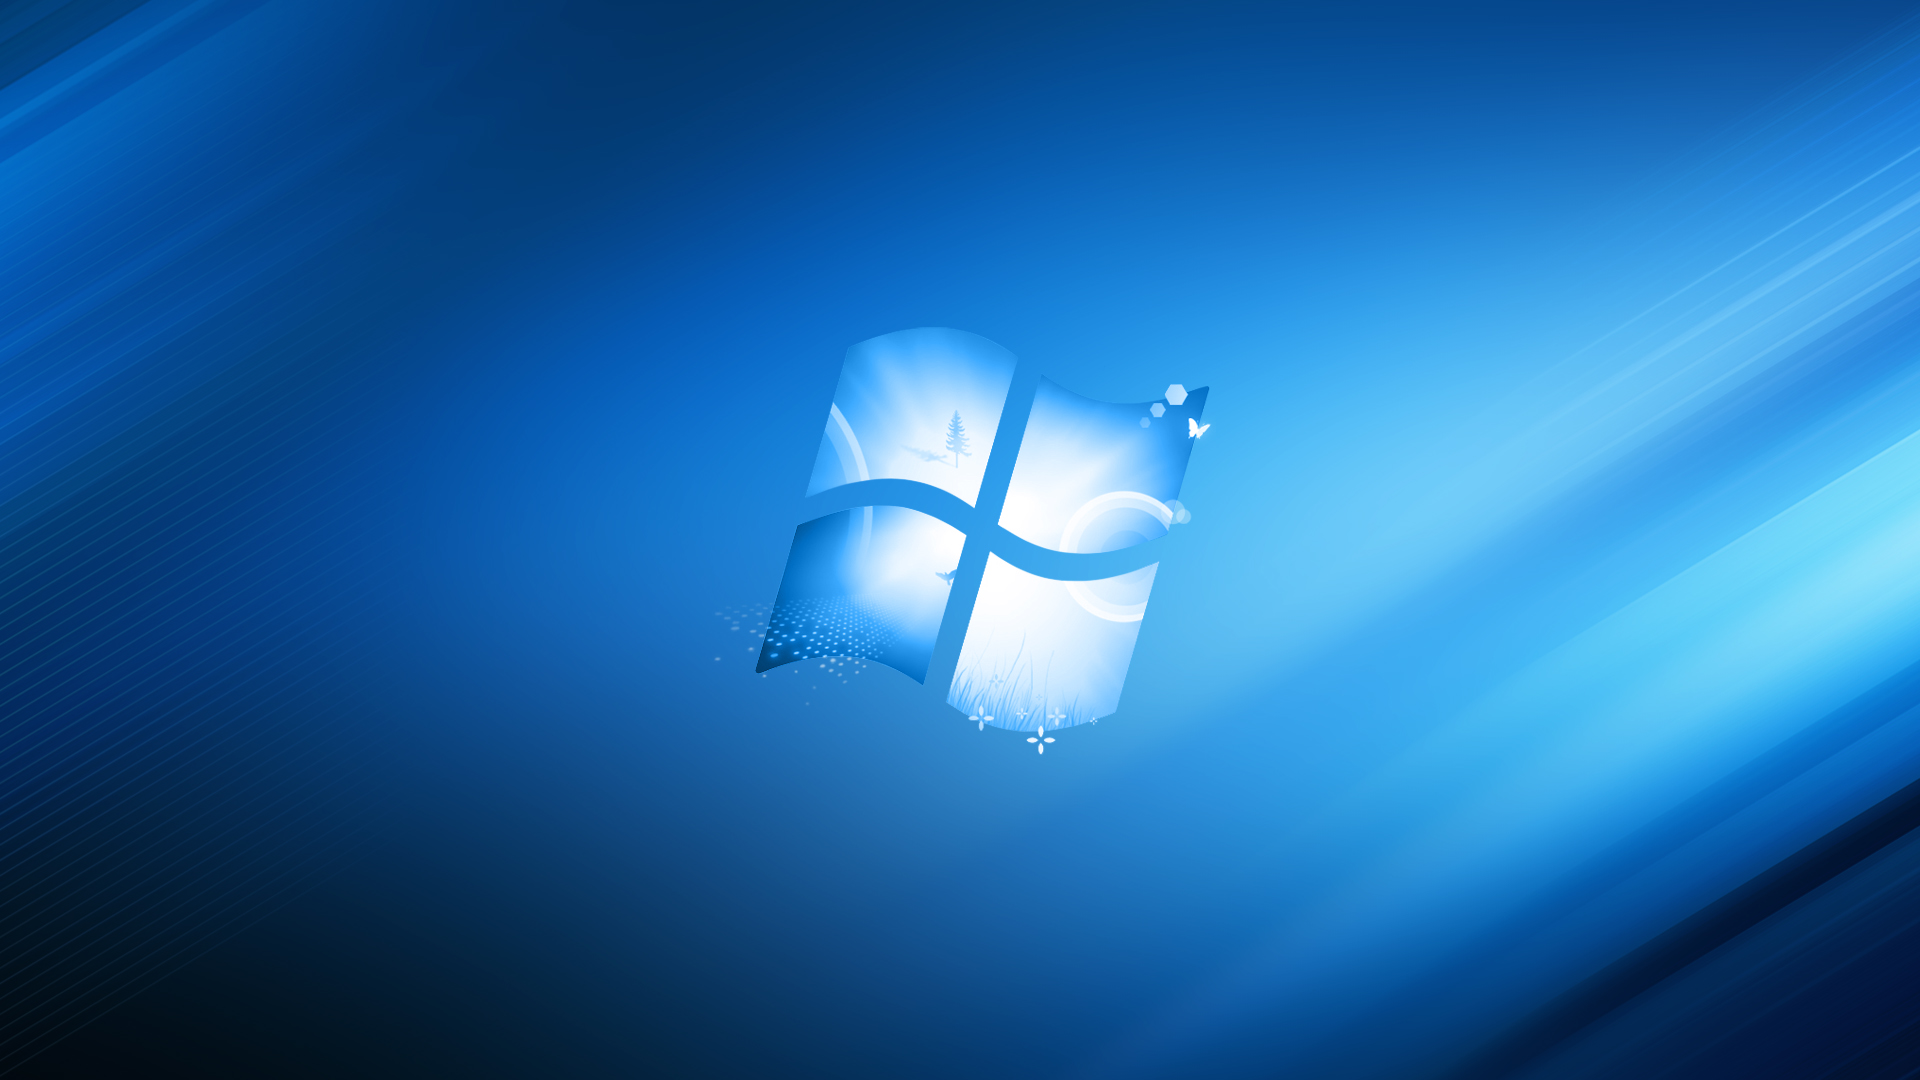 Full HD Windows 8 Background